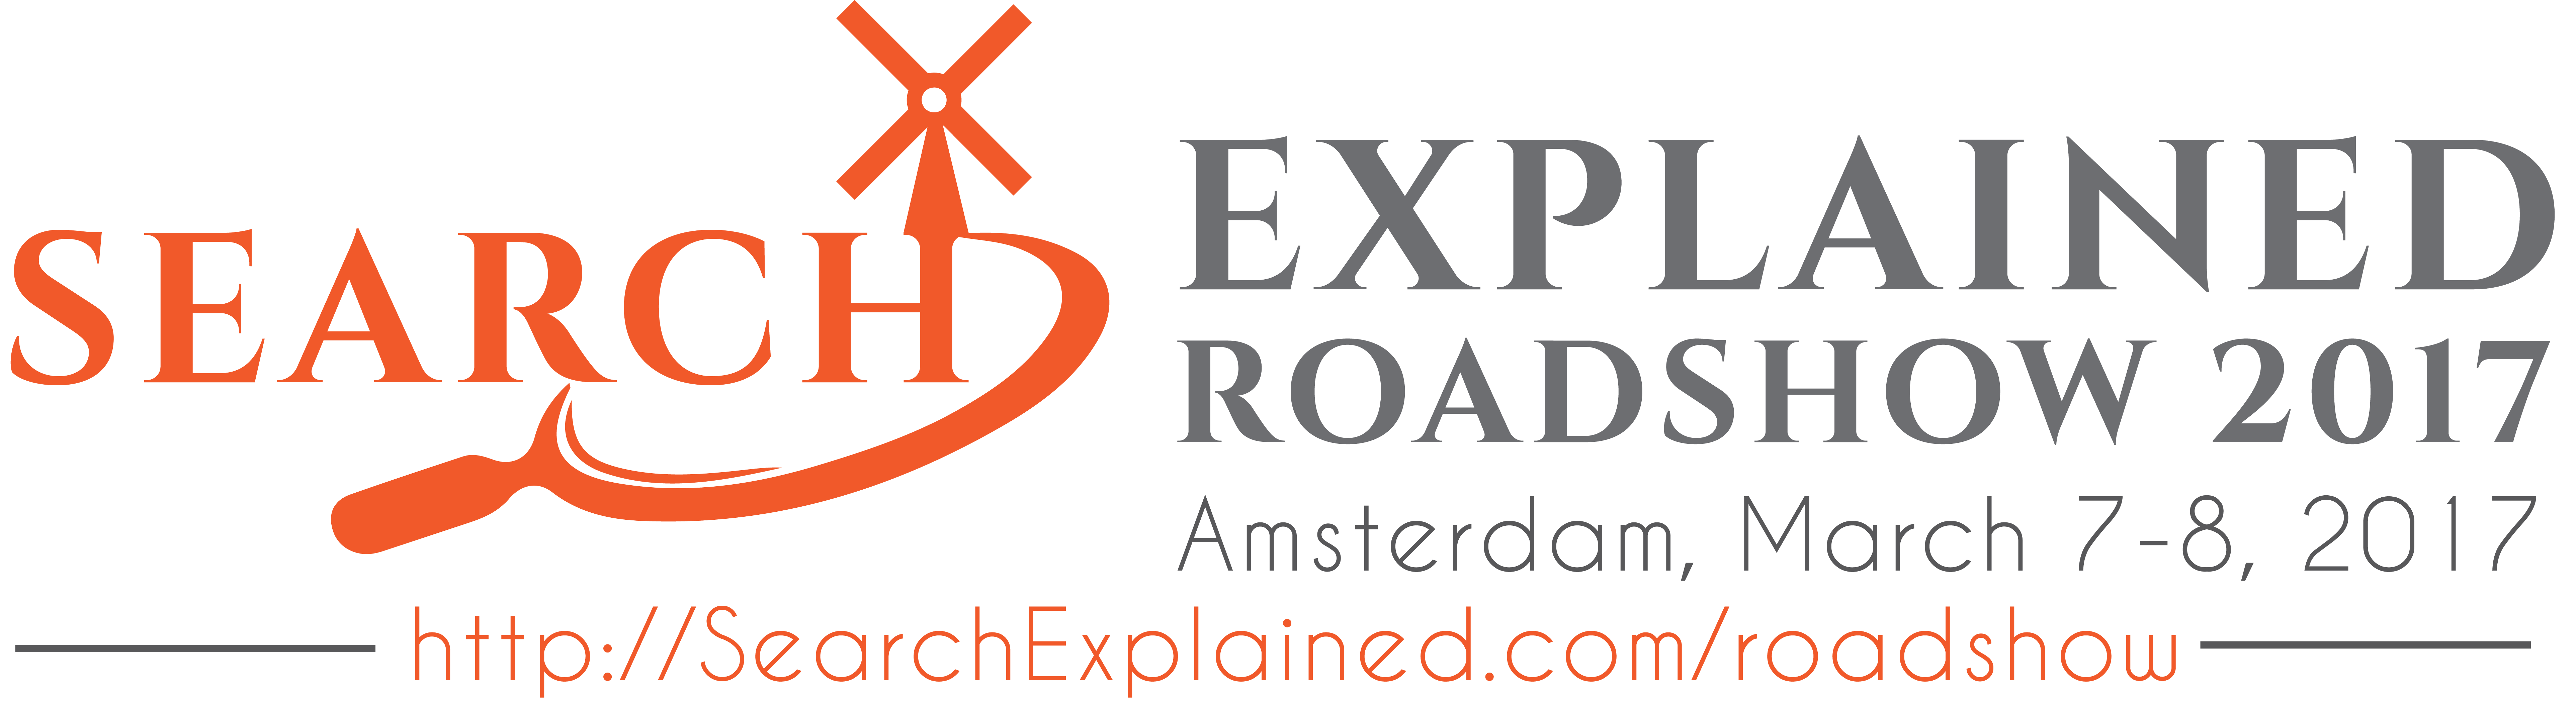 Workshop: SharePoint 2016 and Office 365 Search in Practice – Amsterdam, Netherlands, March 2017